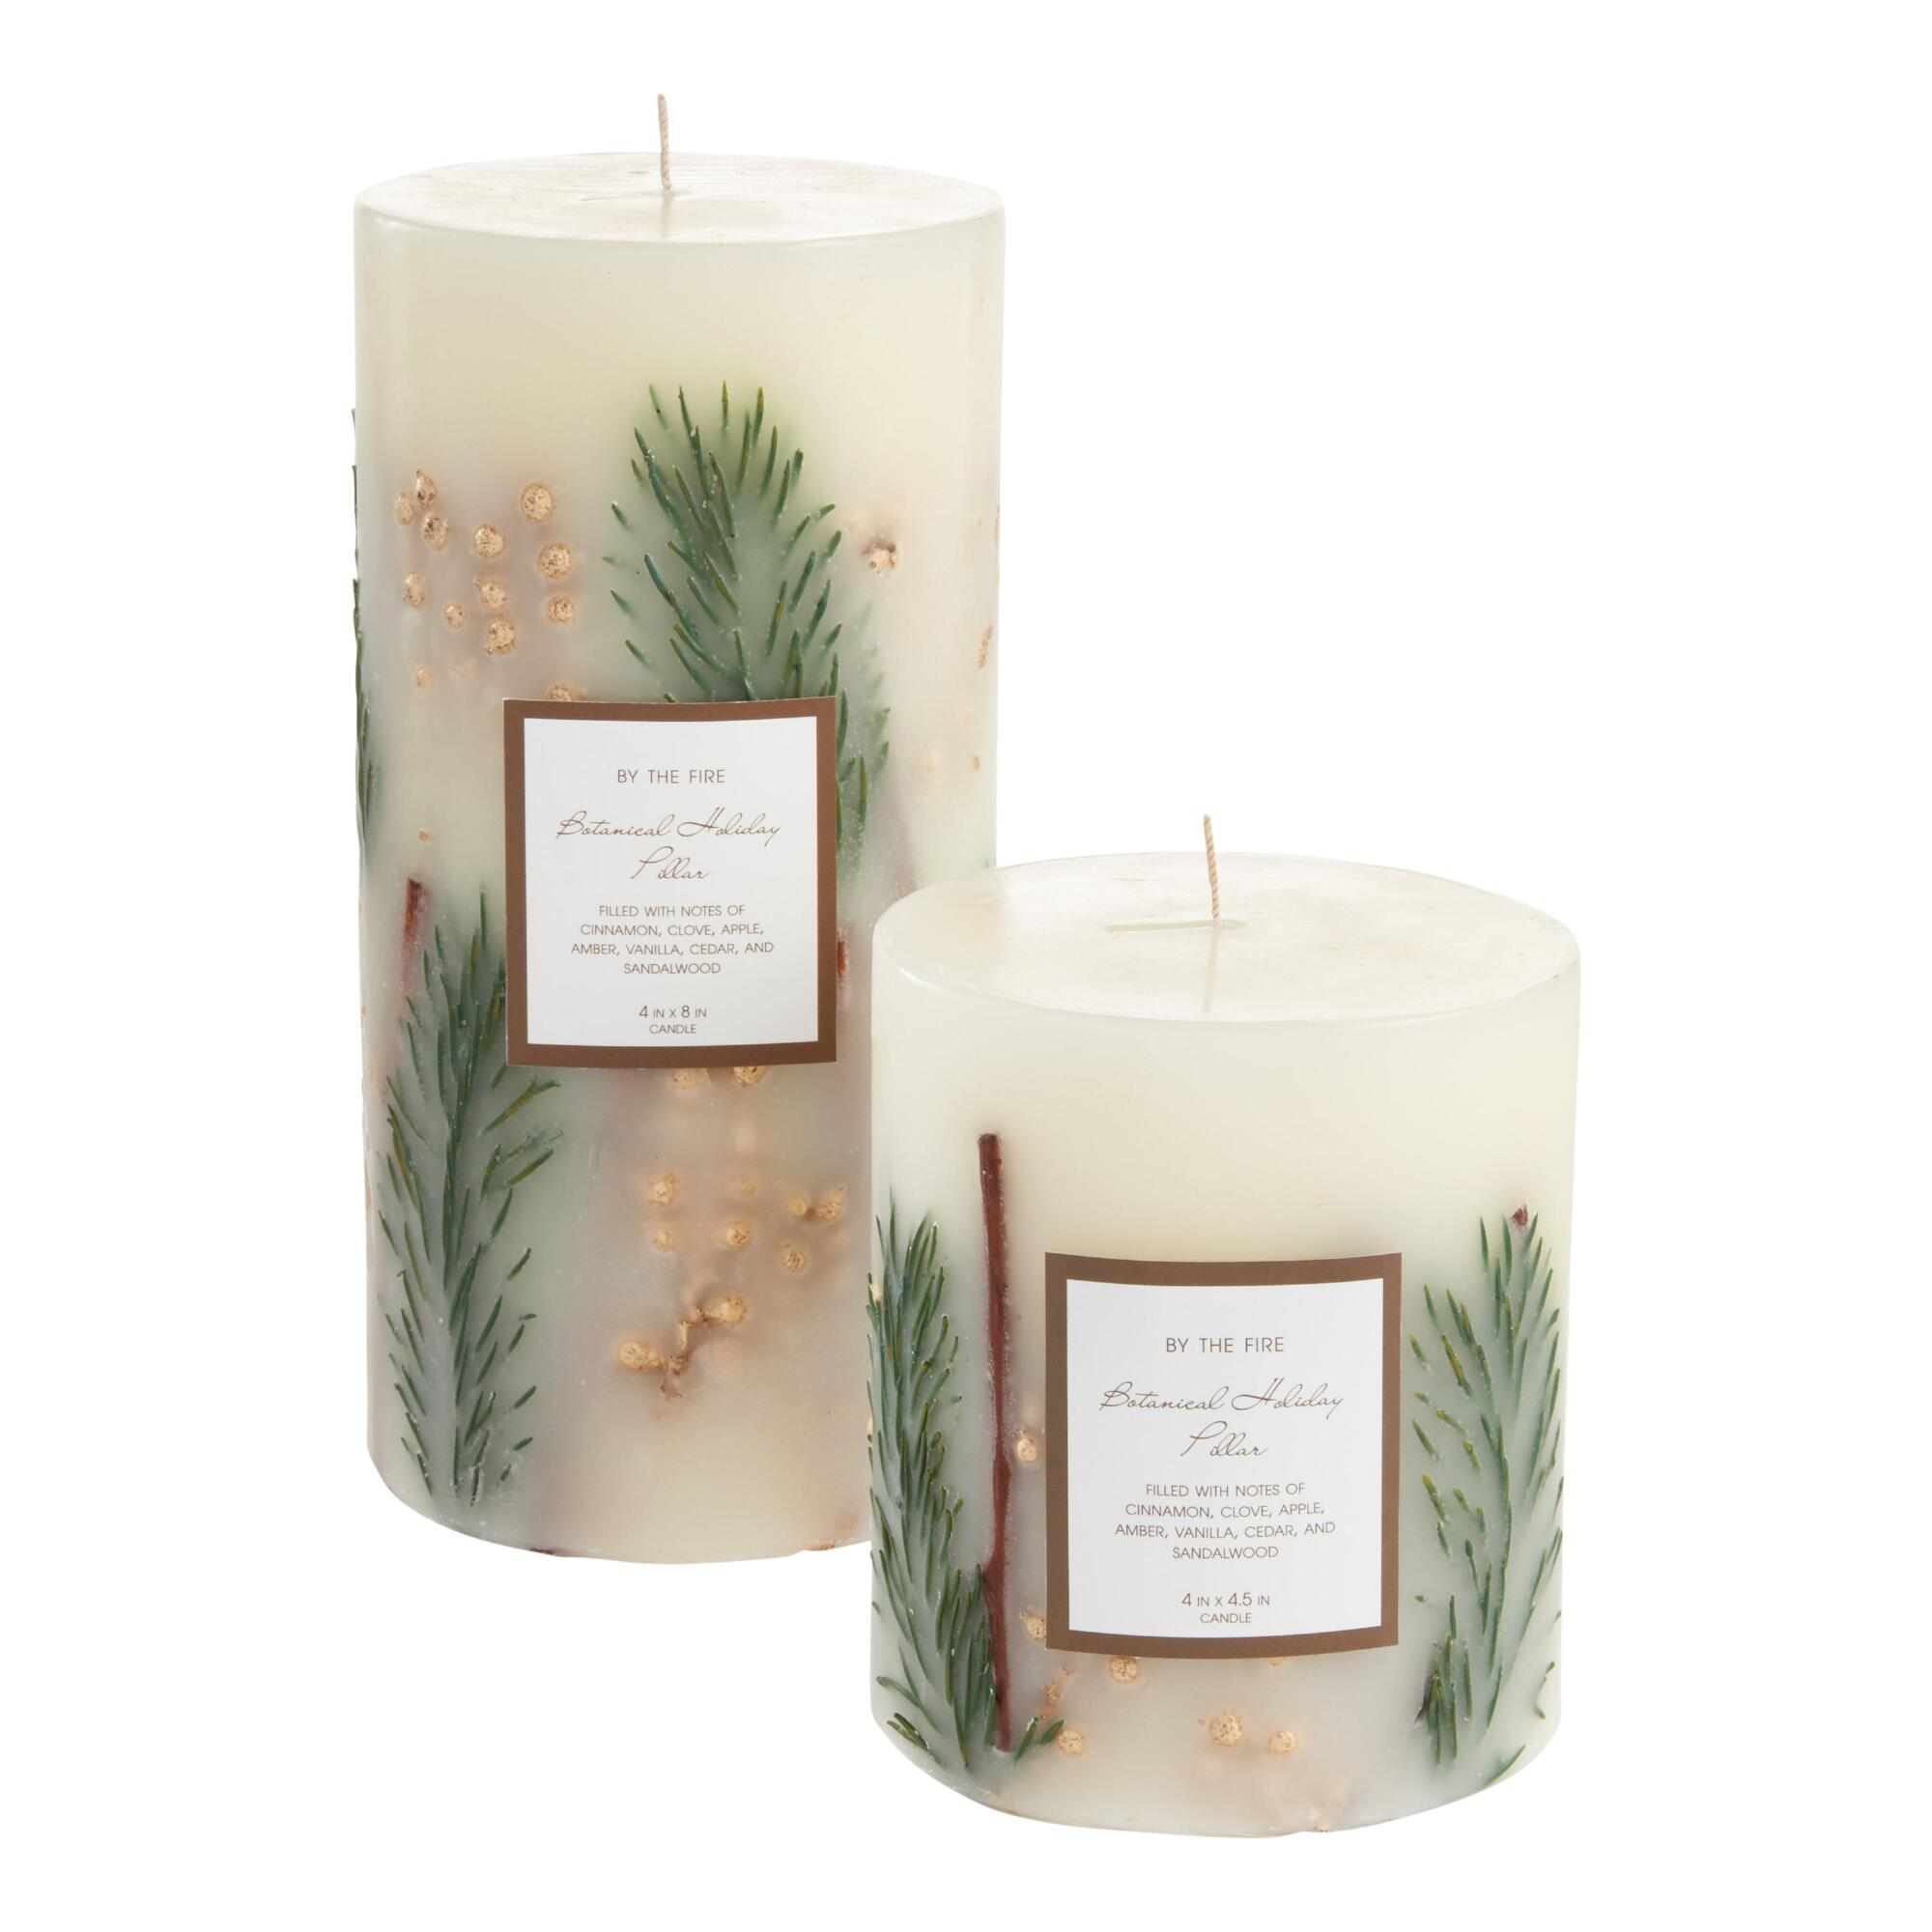 White And Gold Botanical Pillar Candle $14.99-$19.99 https://fave.co/36g3N4z